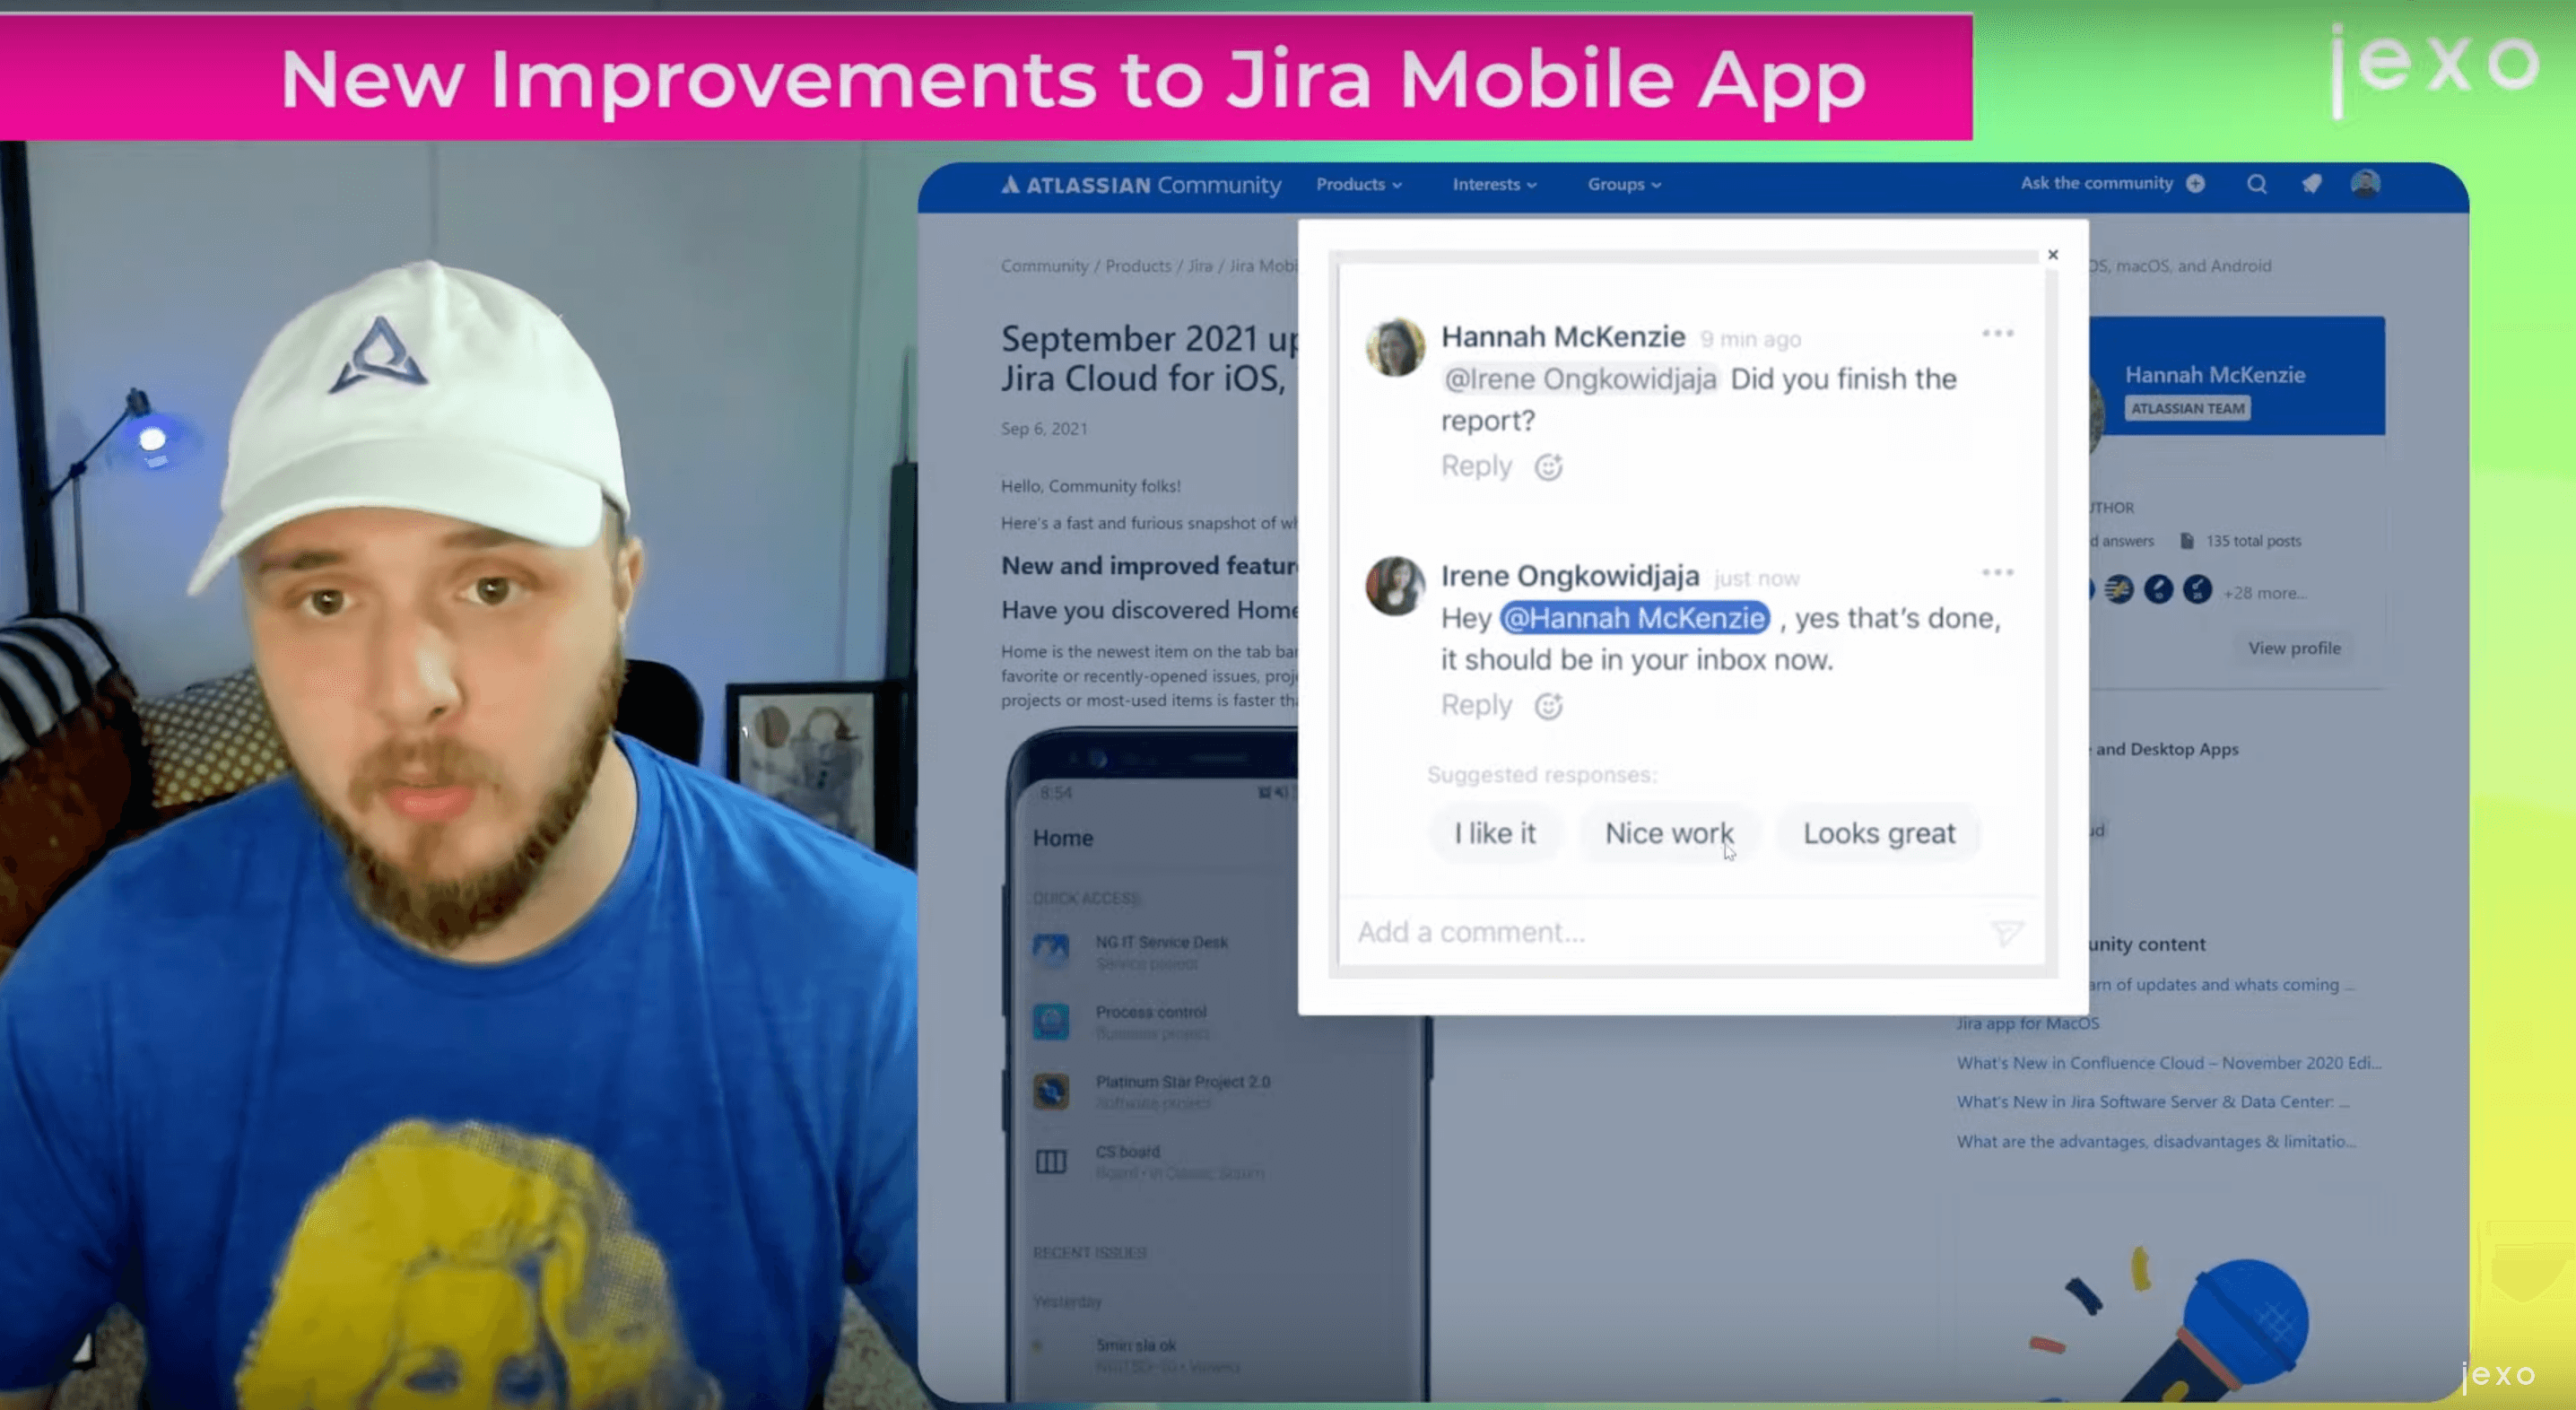 Atlassian News: Comment replies recommendation in Atlassian iOS apps